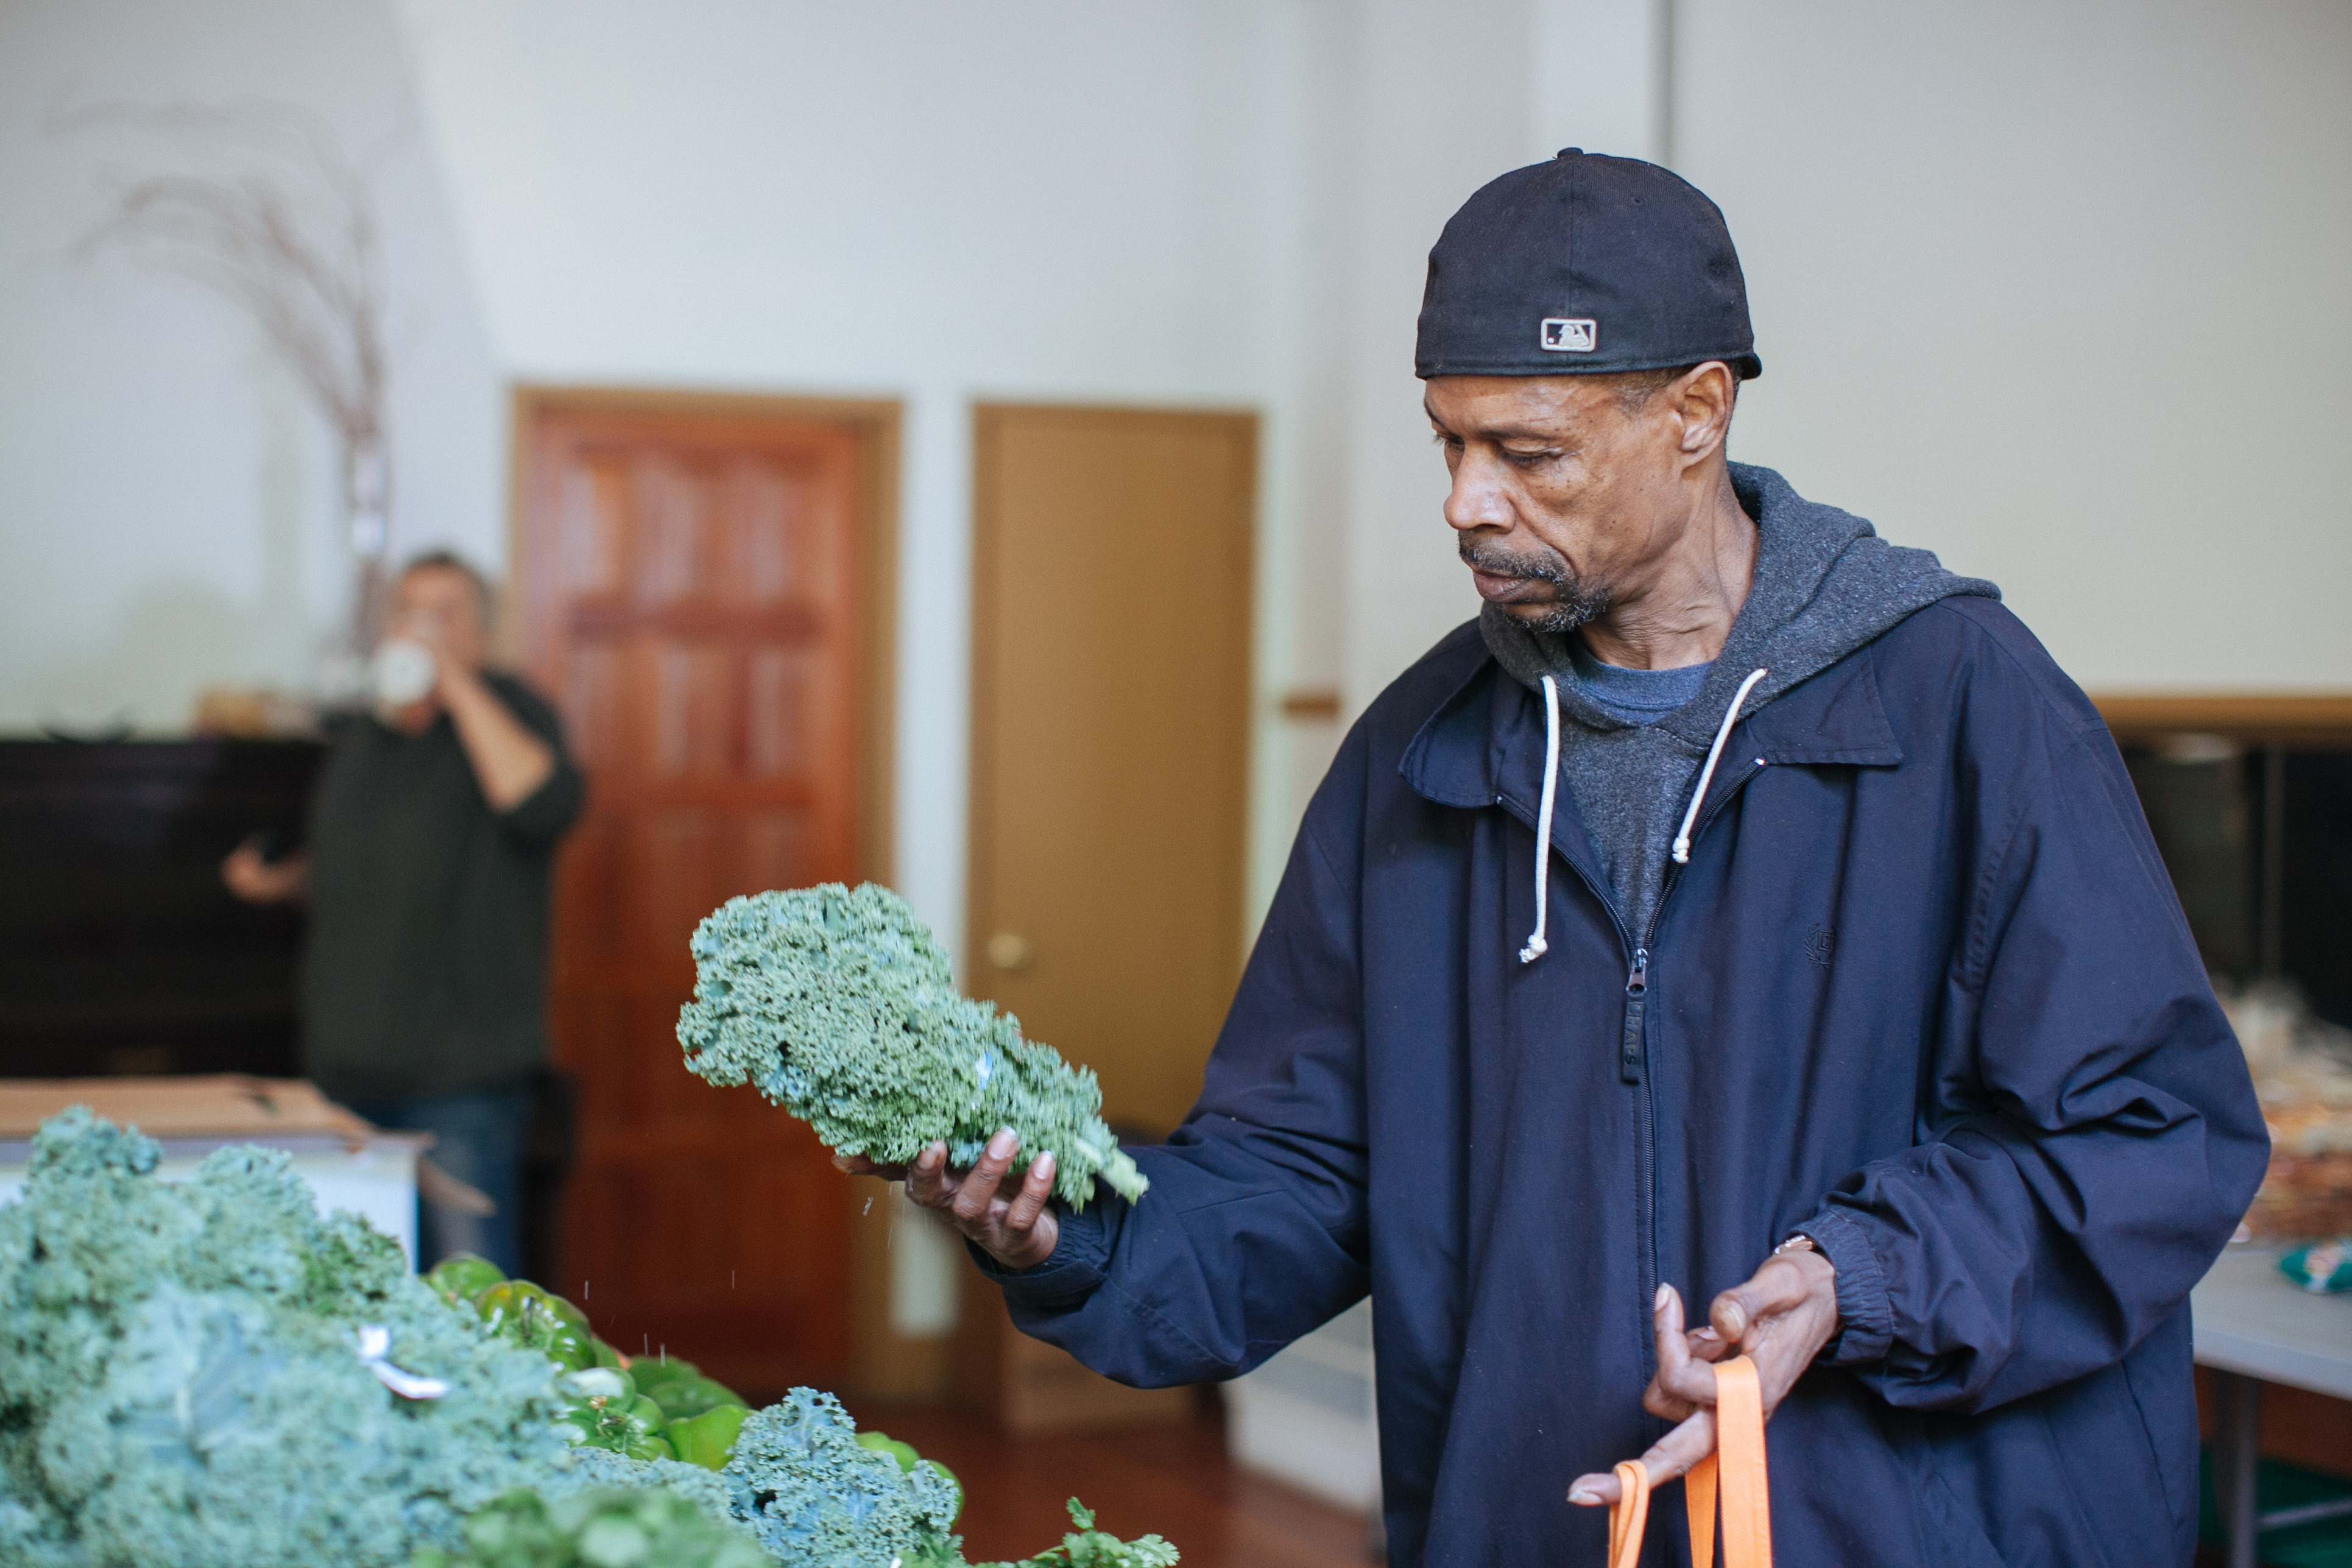 man with kale